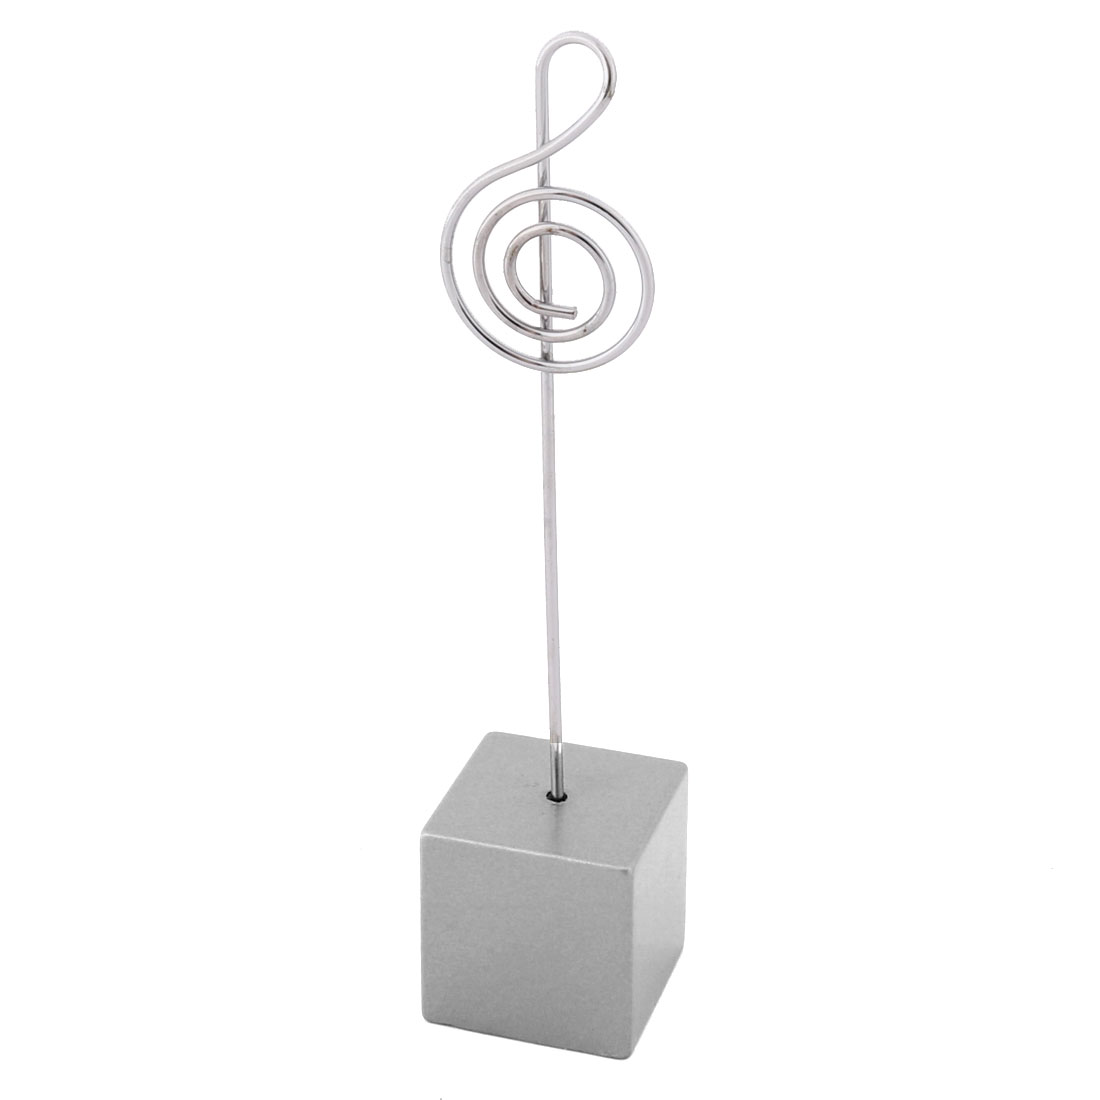 Home Office Resin Musical Note Shaped Tabletop Decor Photo Memo Clip Silver Tone